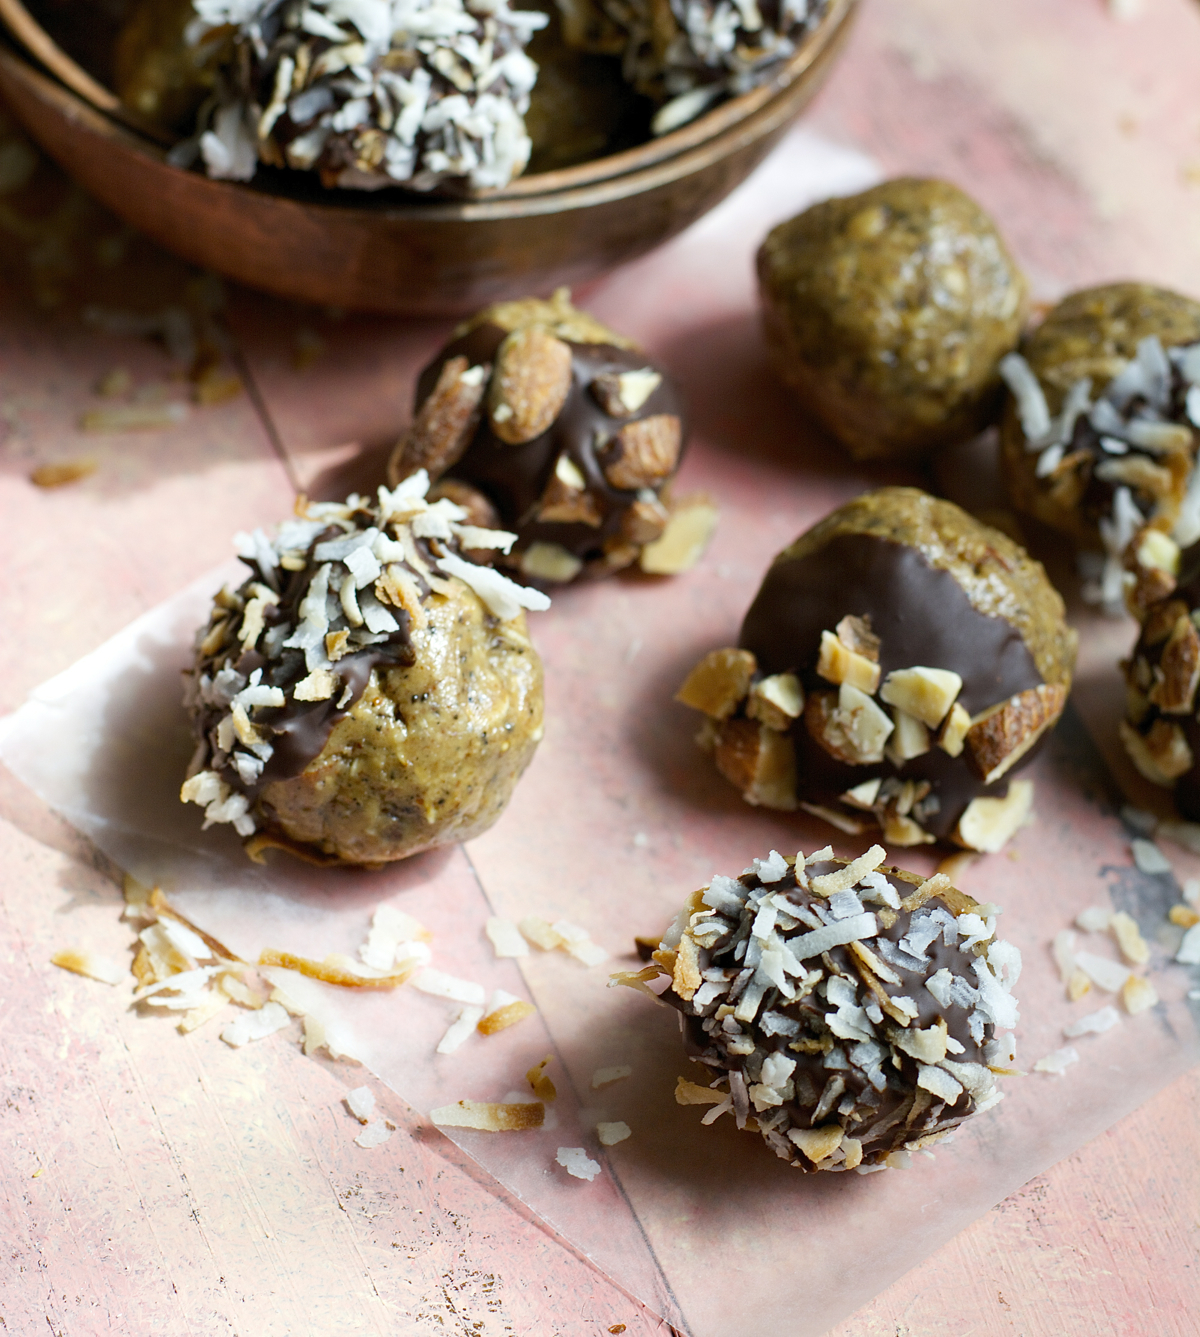 Coconut Mocha Almond Butter Espresso Balls are packed with oats, almonds, coffee and toasted coconut! The perfect snack for a little pick me up!